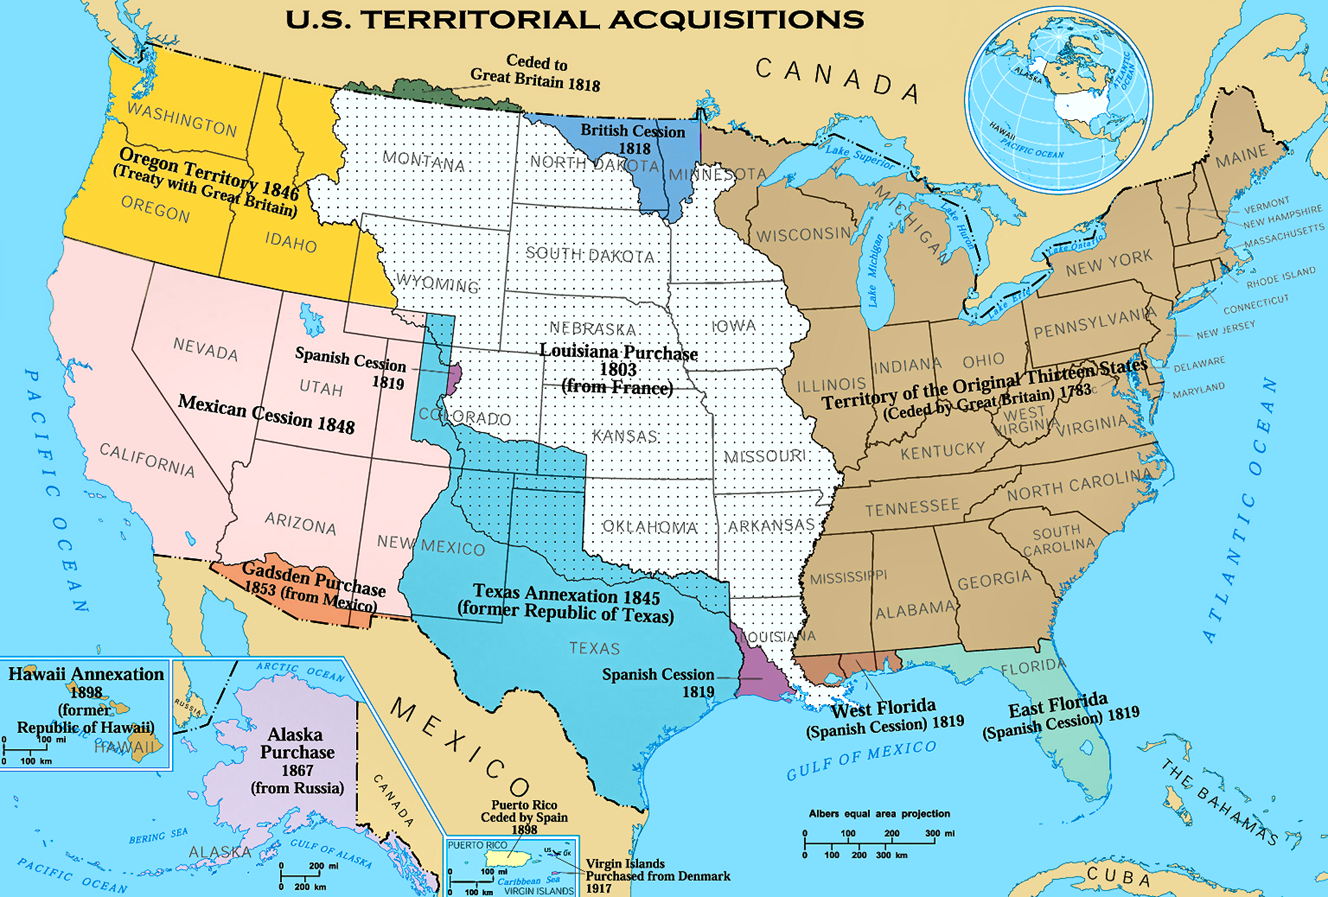 a description of the annexation of texas to the united states This year marks the 170th anniversary of the annexation of texas by the united states government although texas militias had gained de facto independence from mexico in 1836, negotiations between mexico and the united states continued for another nine years as the texas government attempted to.